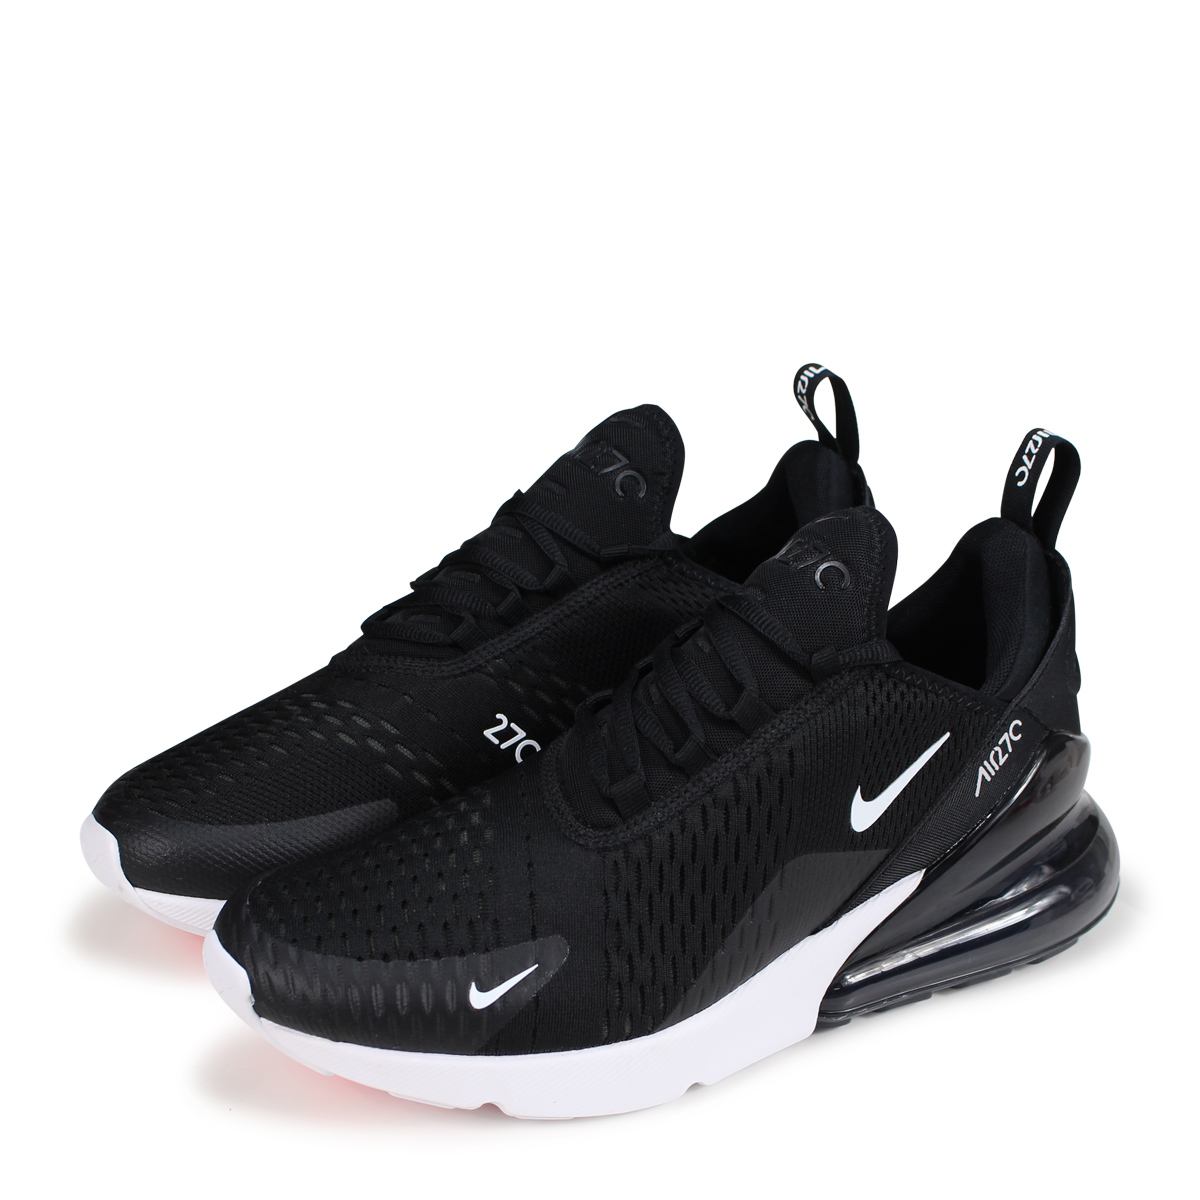 best website 9111f 59cdc Nike NIKE Air Max 270 sneakers men AIR MAX 270 AH8050-002 black [the 8/16  additional arrival] [198]